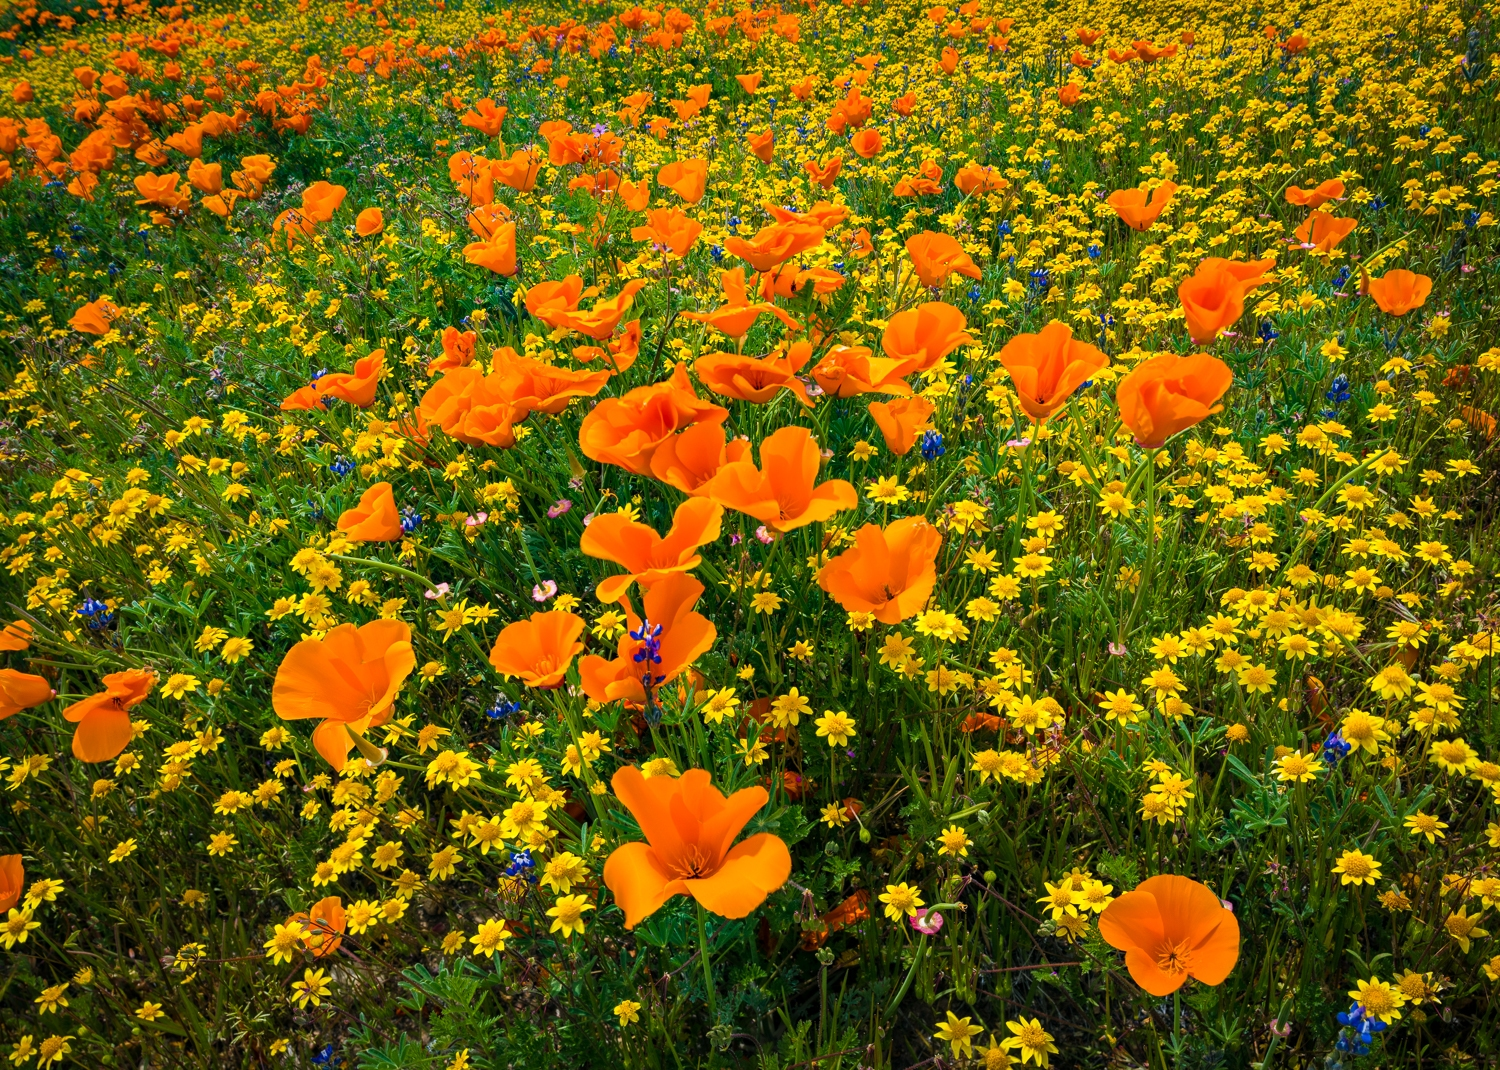 California poppies and goldfields, Mojave desert, California.